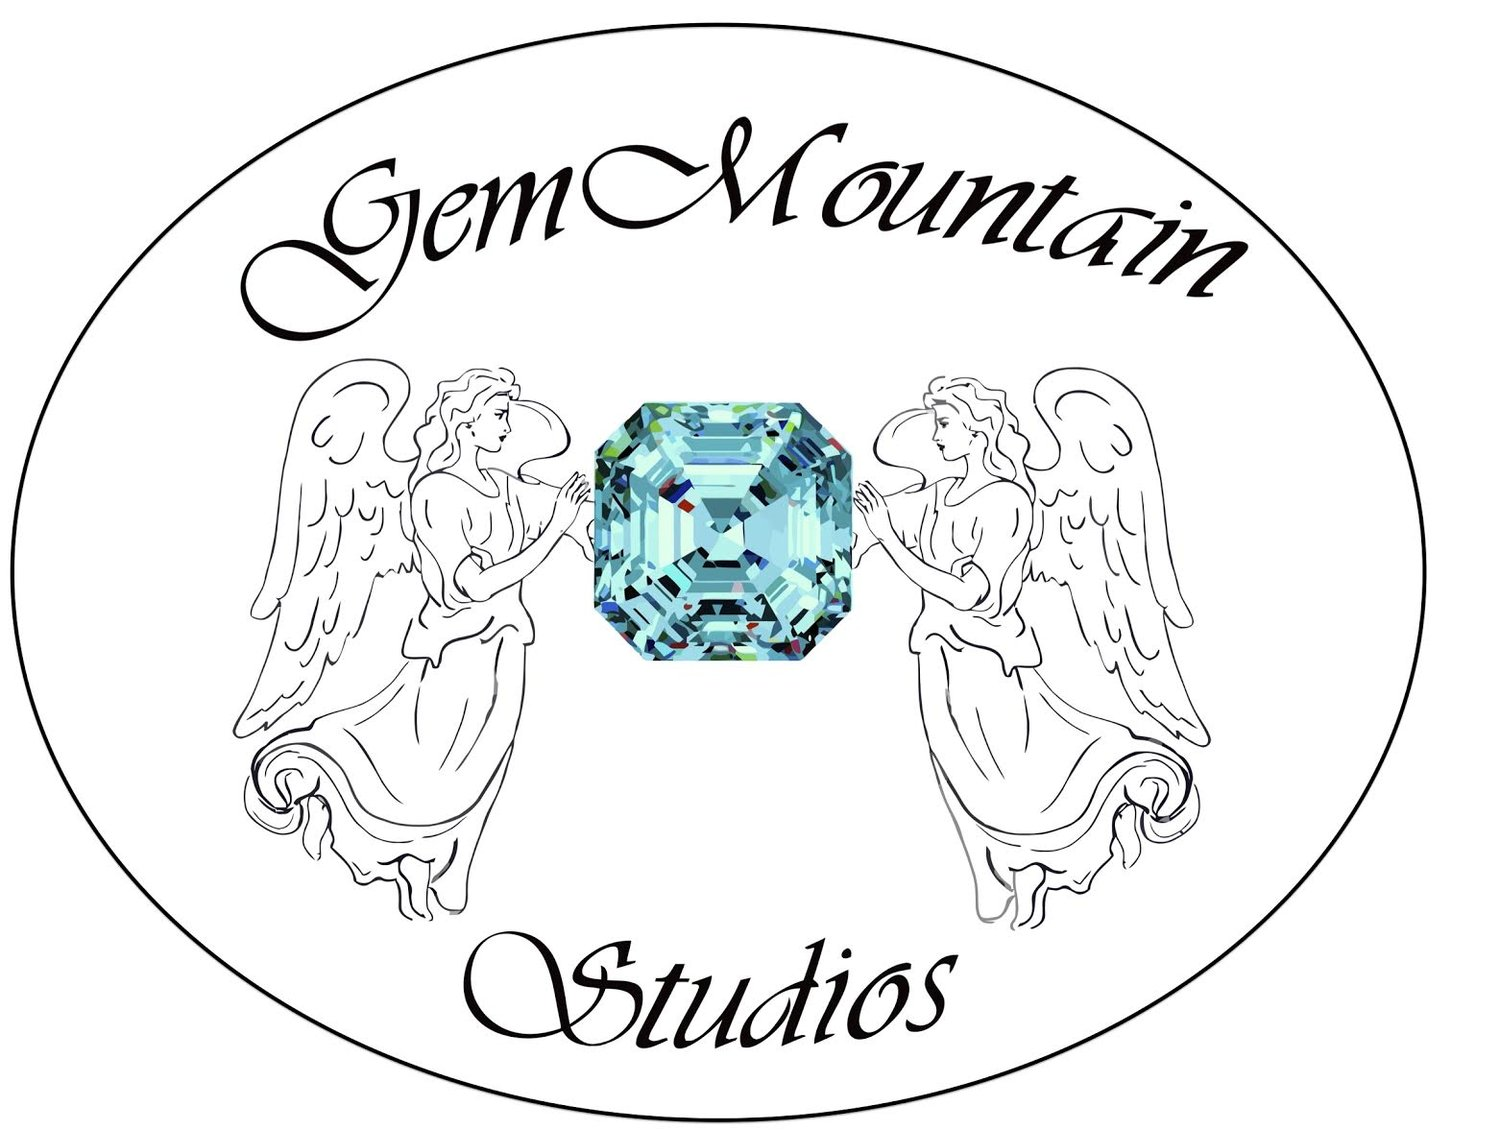 Gem Mountain Studios